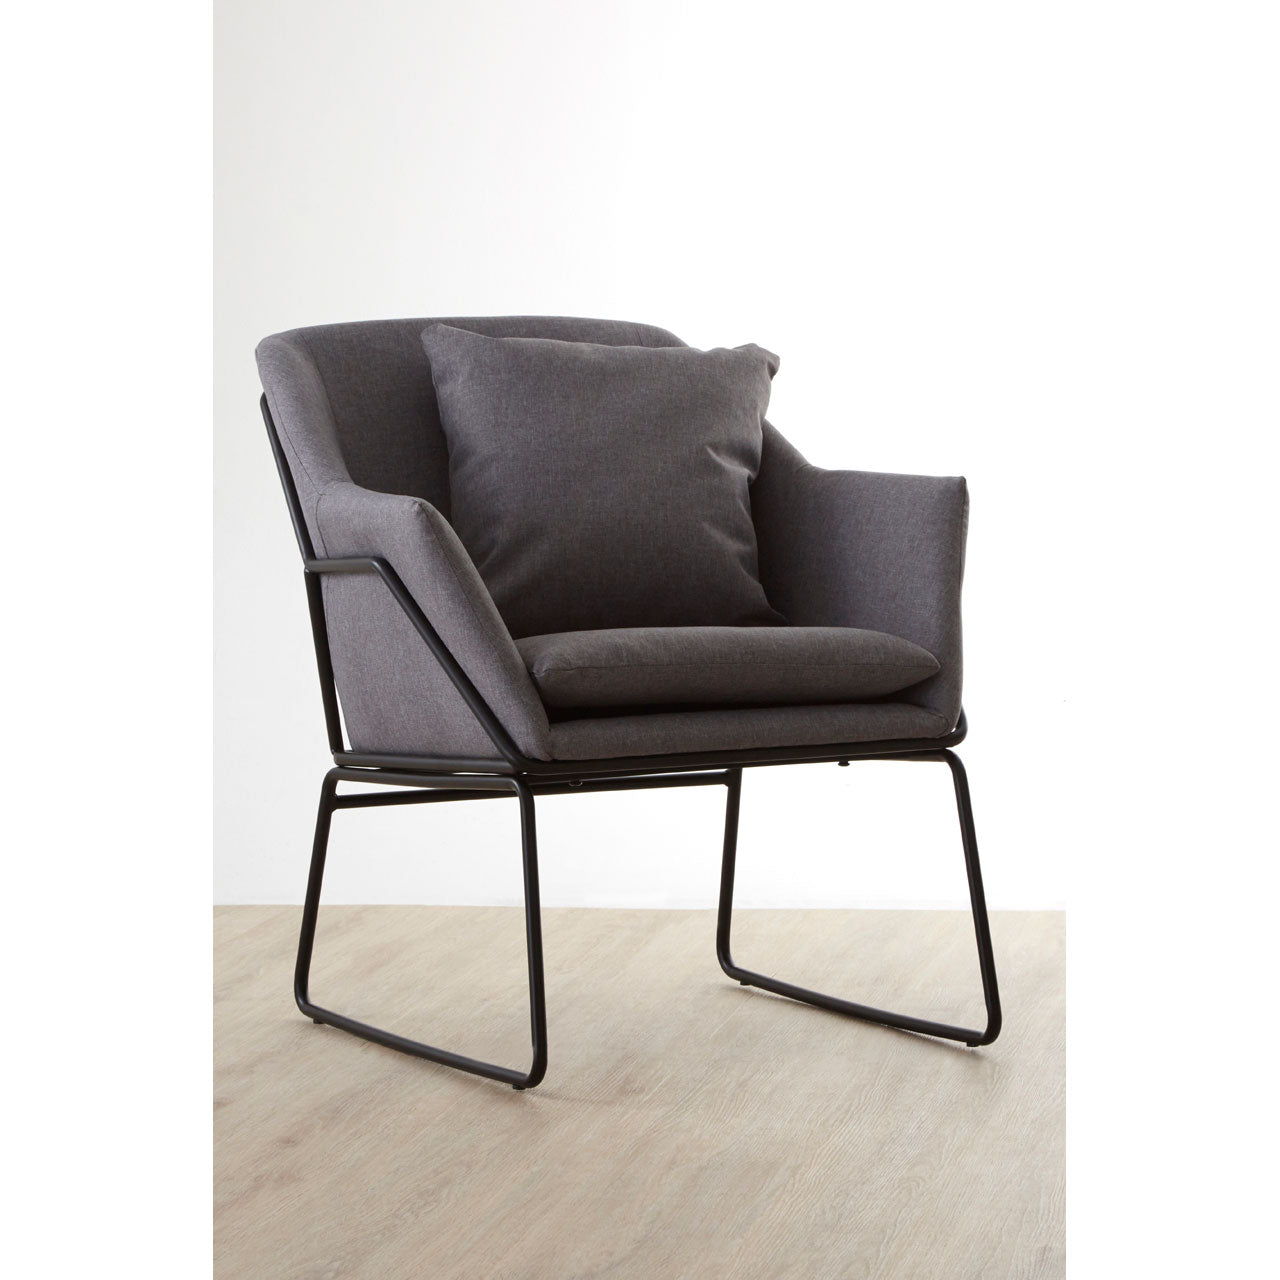 Stockholm Grey Fabric Chair